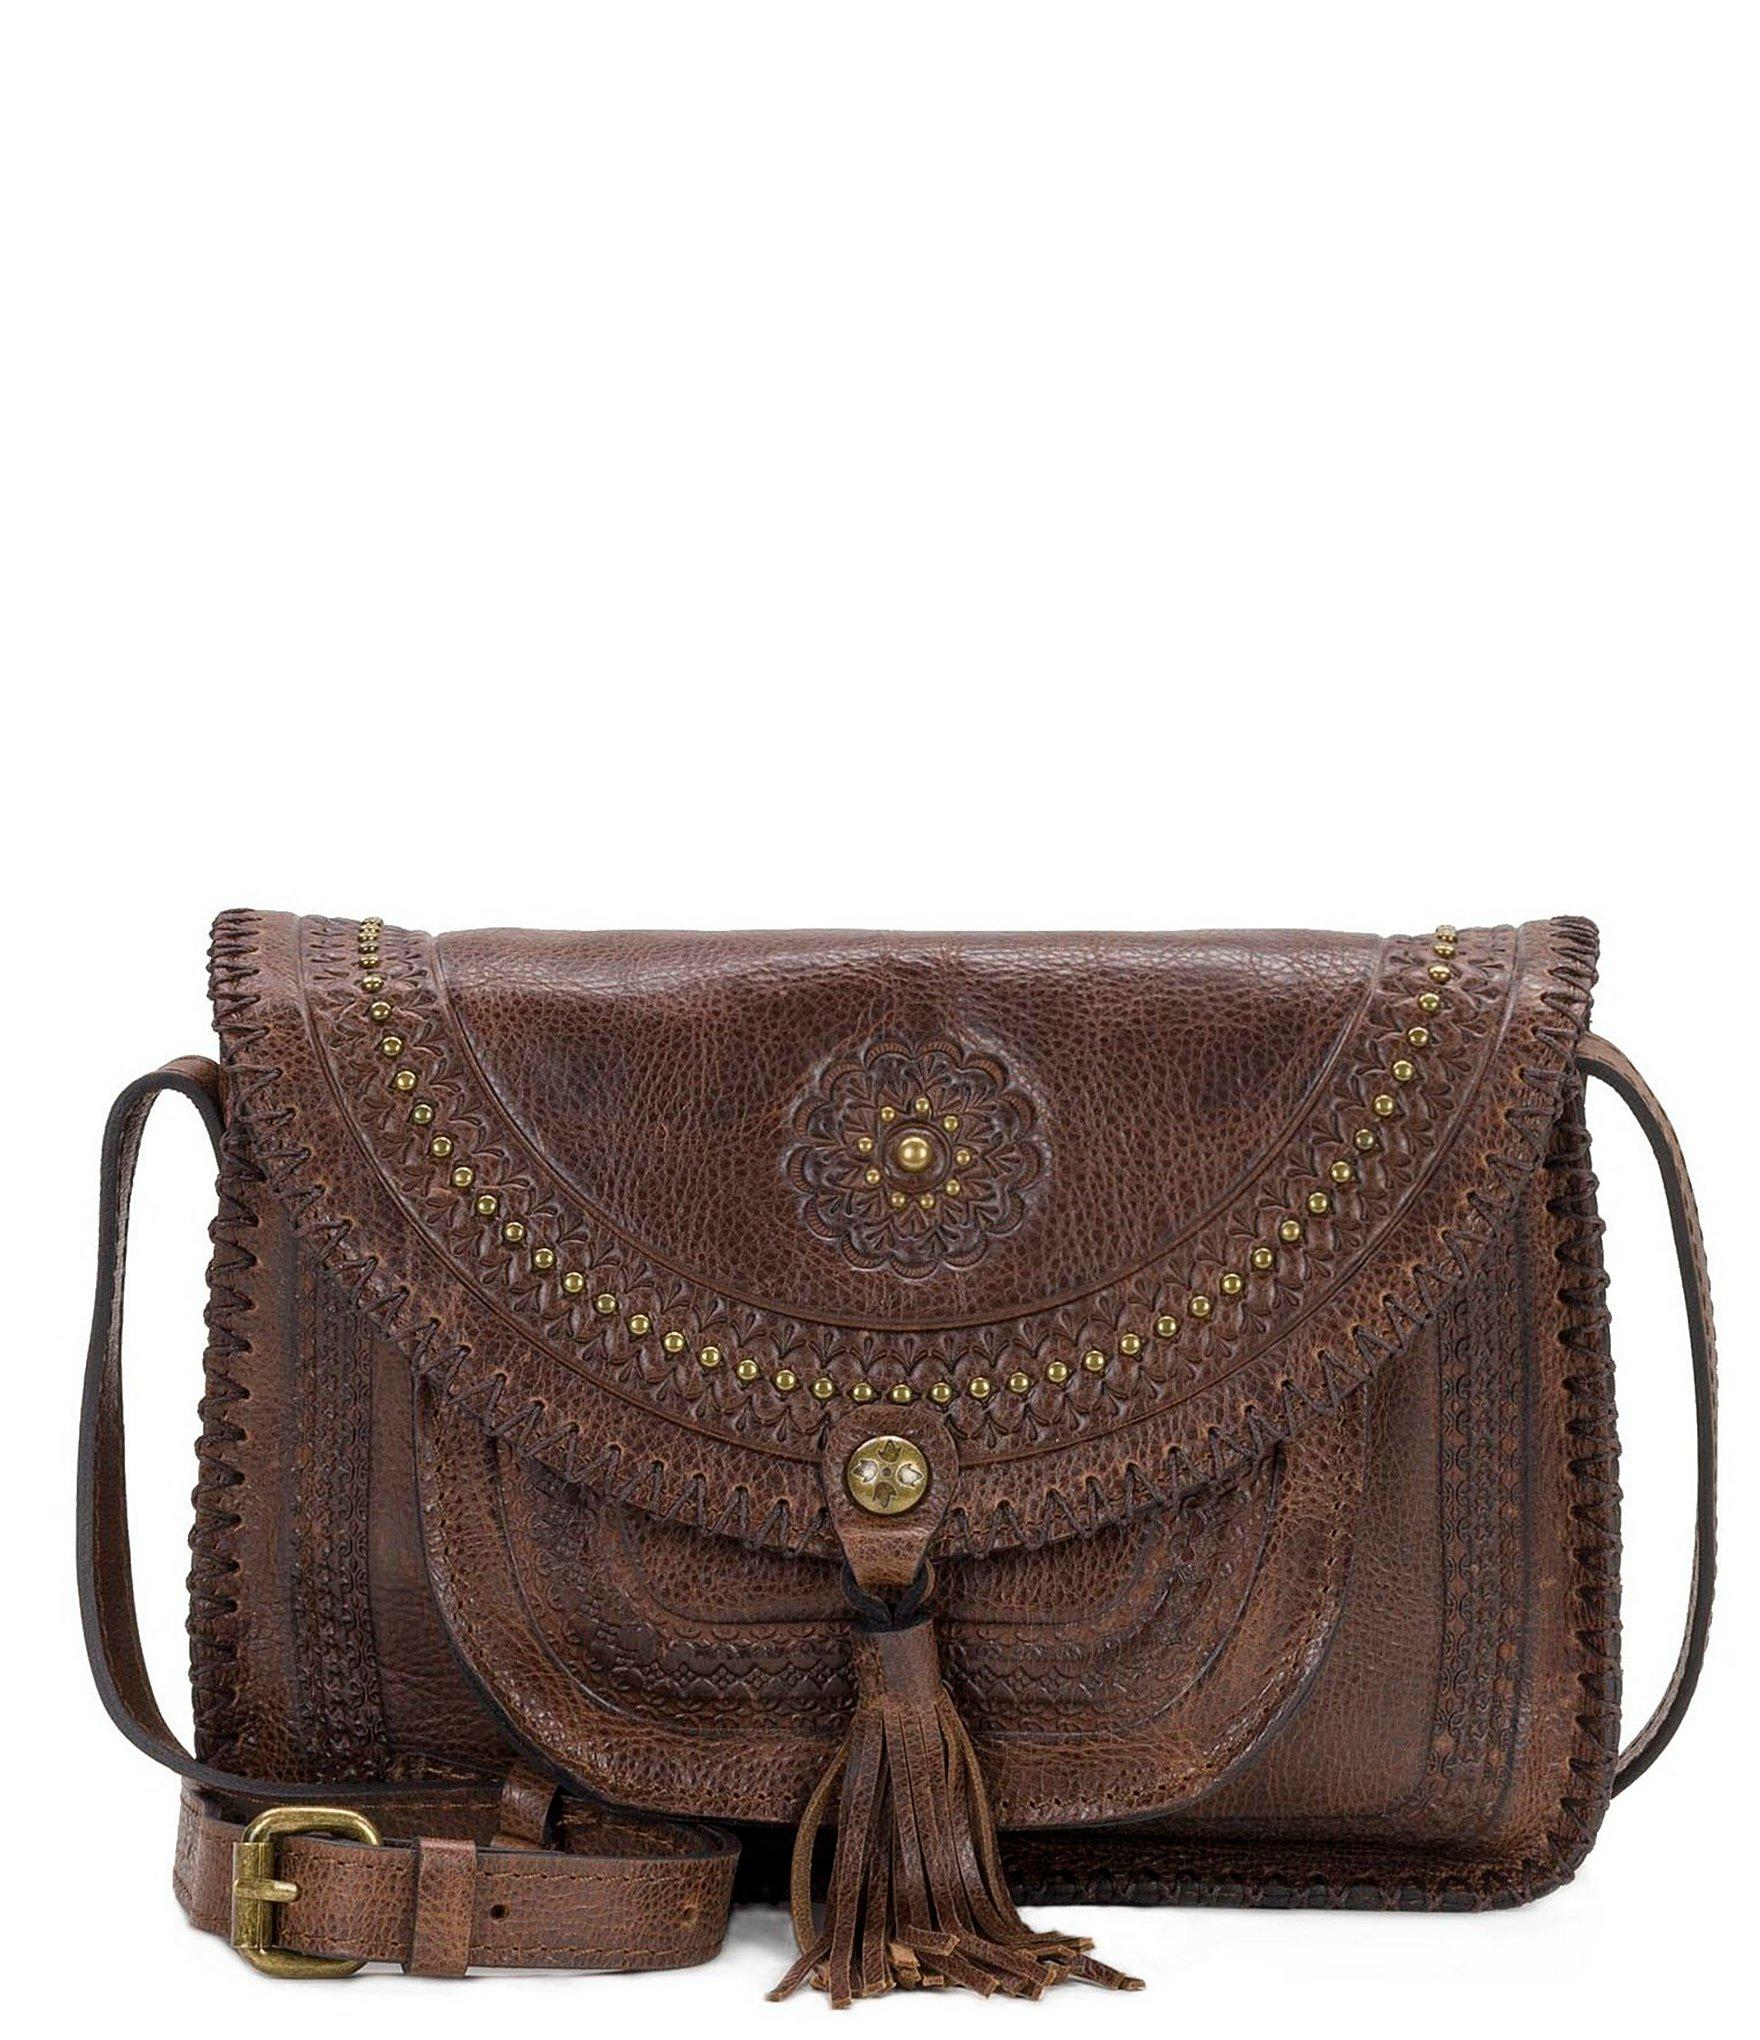 76b8848e9f Patricia Nash. Women s Brown Distressed Vintage Collection Beaumont  Tasseled Cross-body Bag